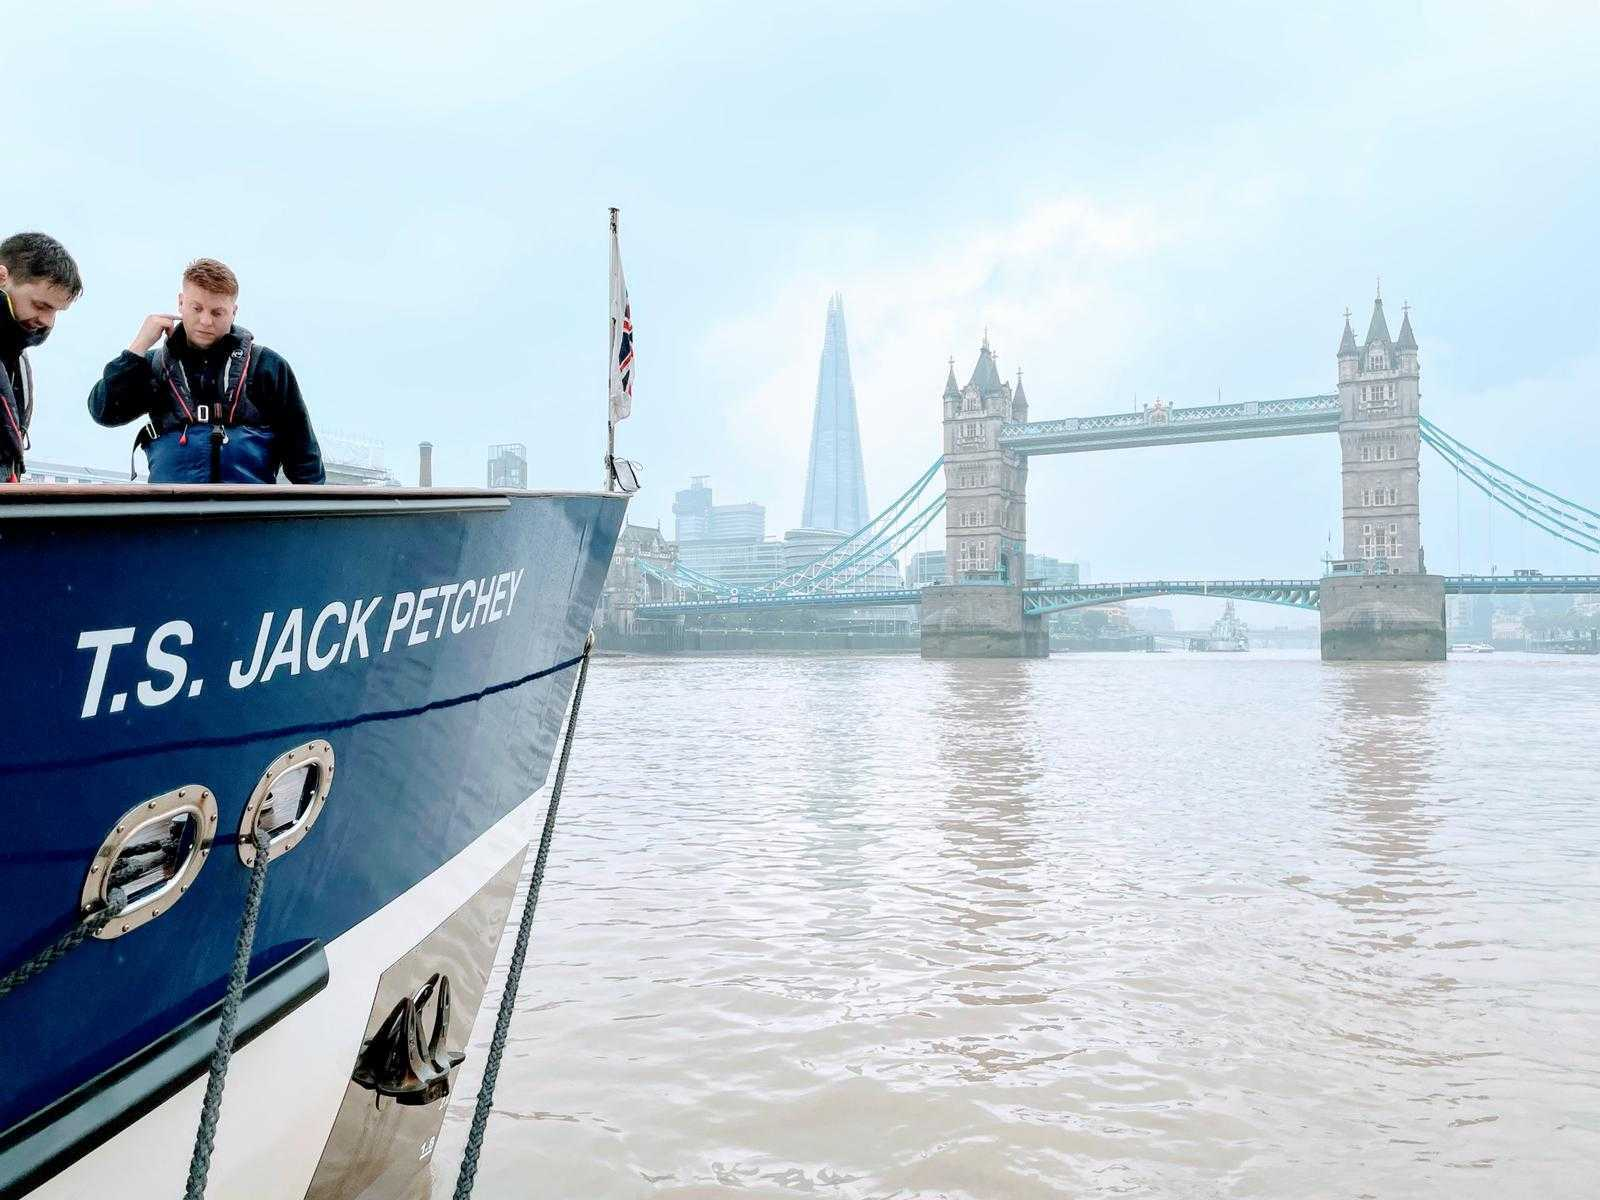 TS Jack Petchey: Bringing young people to the sea, even during the pandemic!